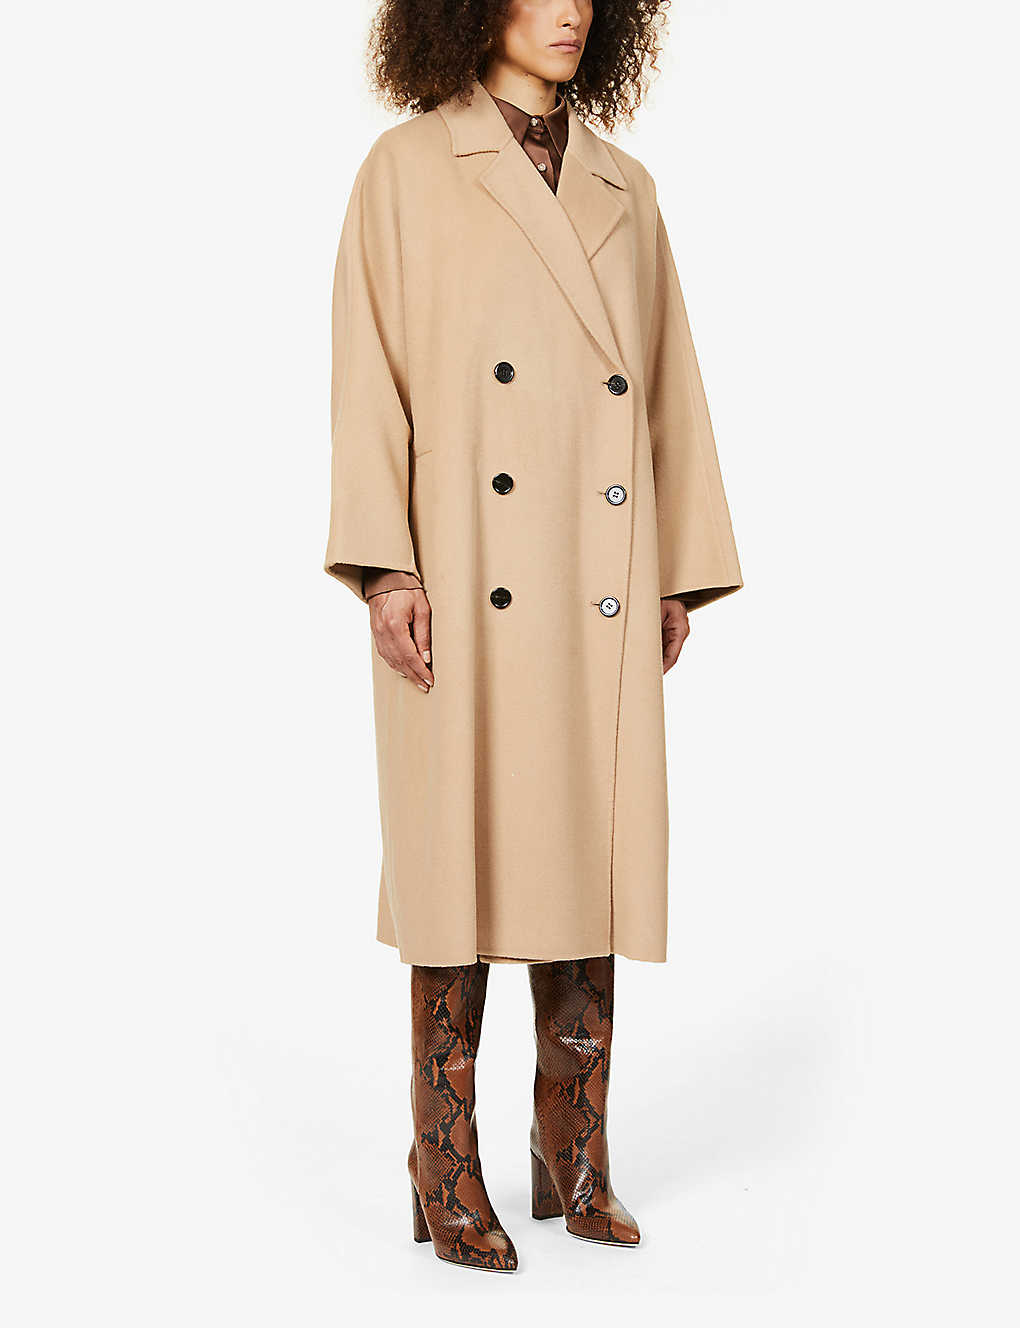 STAND: Mikaela oversized wool coat